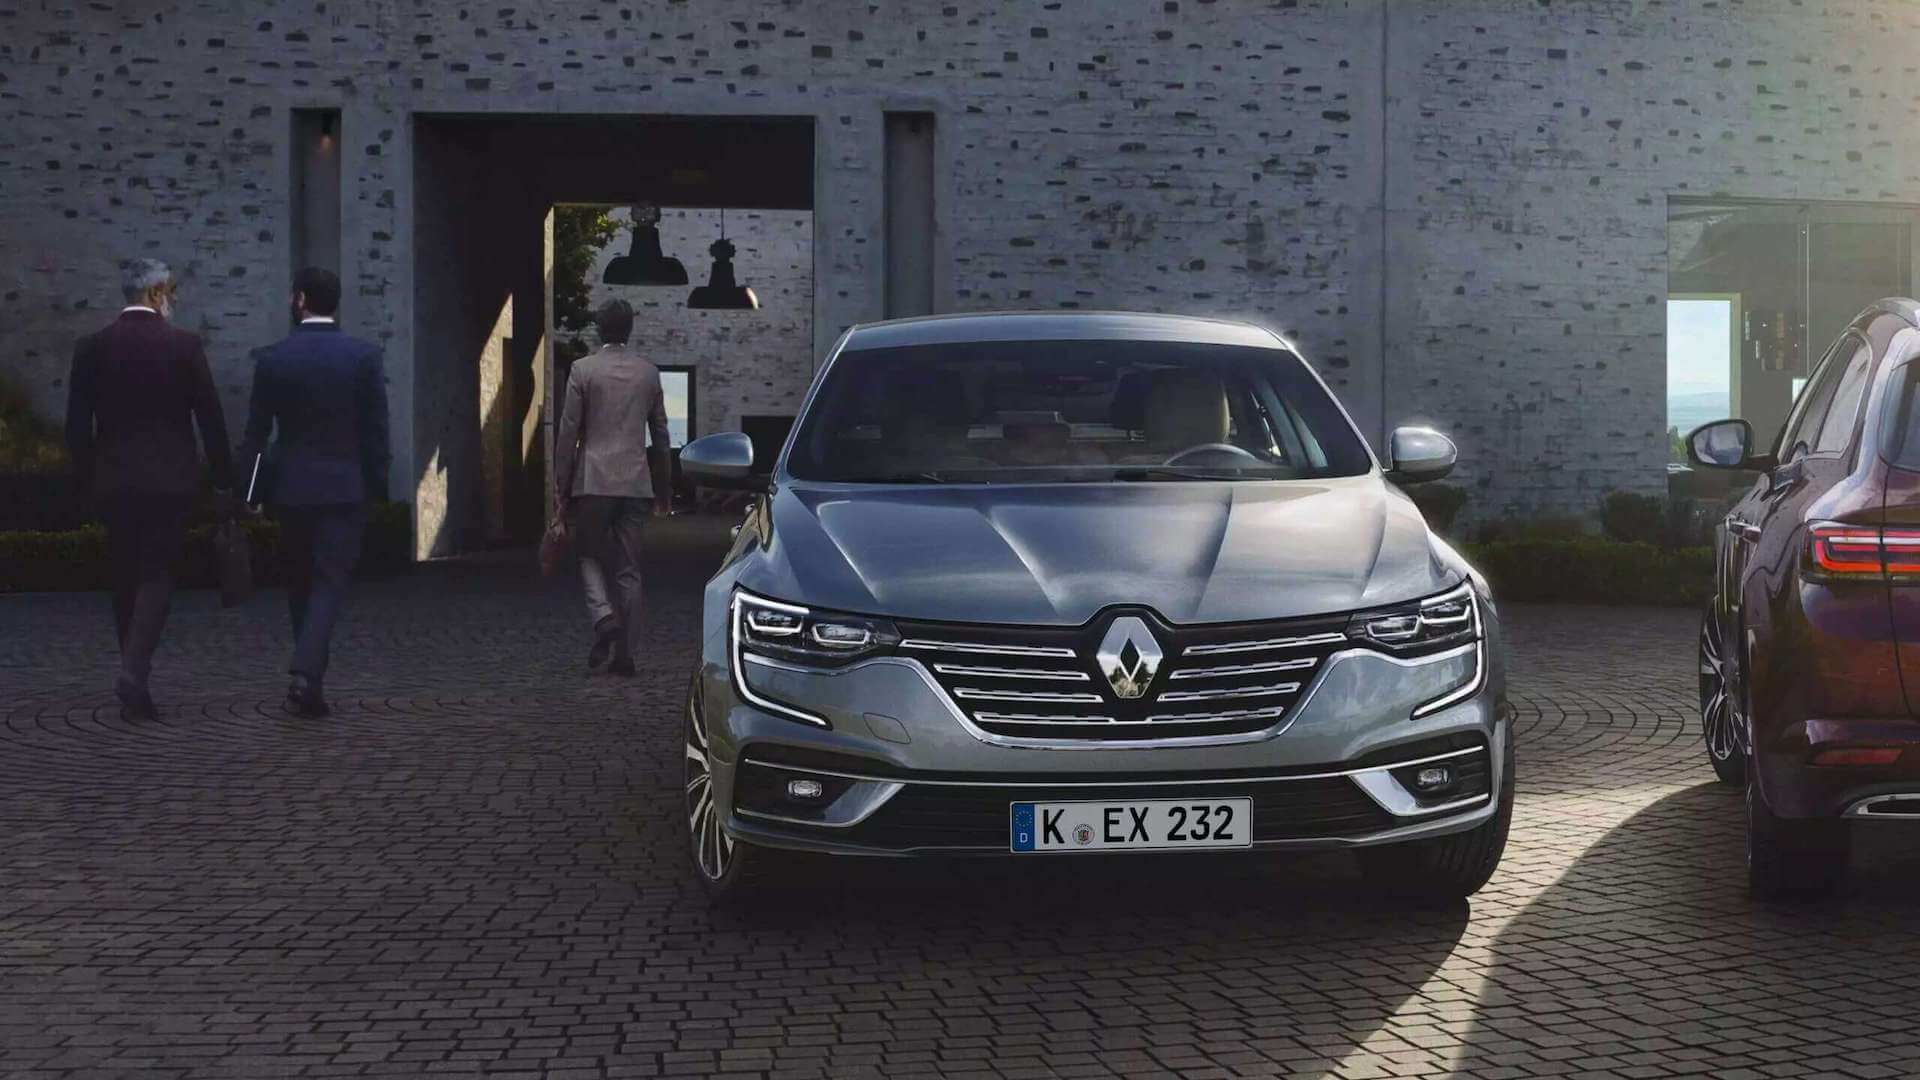 Frontansicht - silbernes Auto - Renault Talisman - Renault Ahrens Hannover